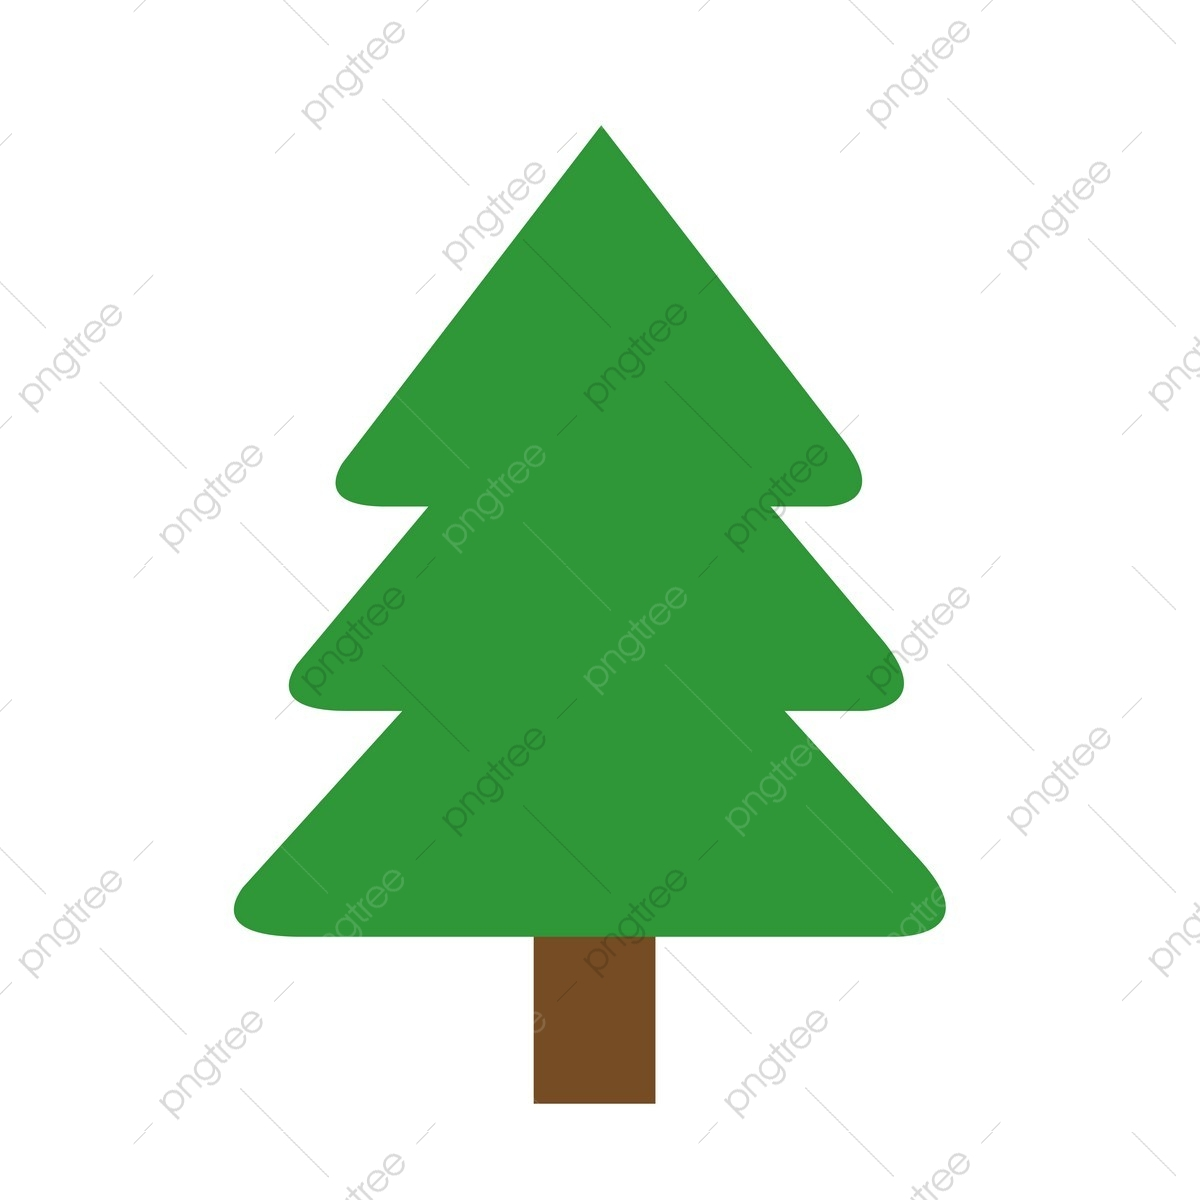 Christmas Tree Icon Png.Christmas Tree Icon Christmas Icon Tree Png And Vector